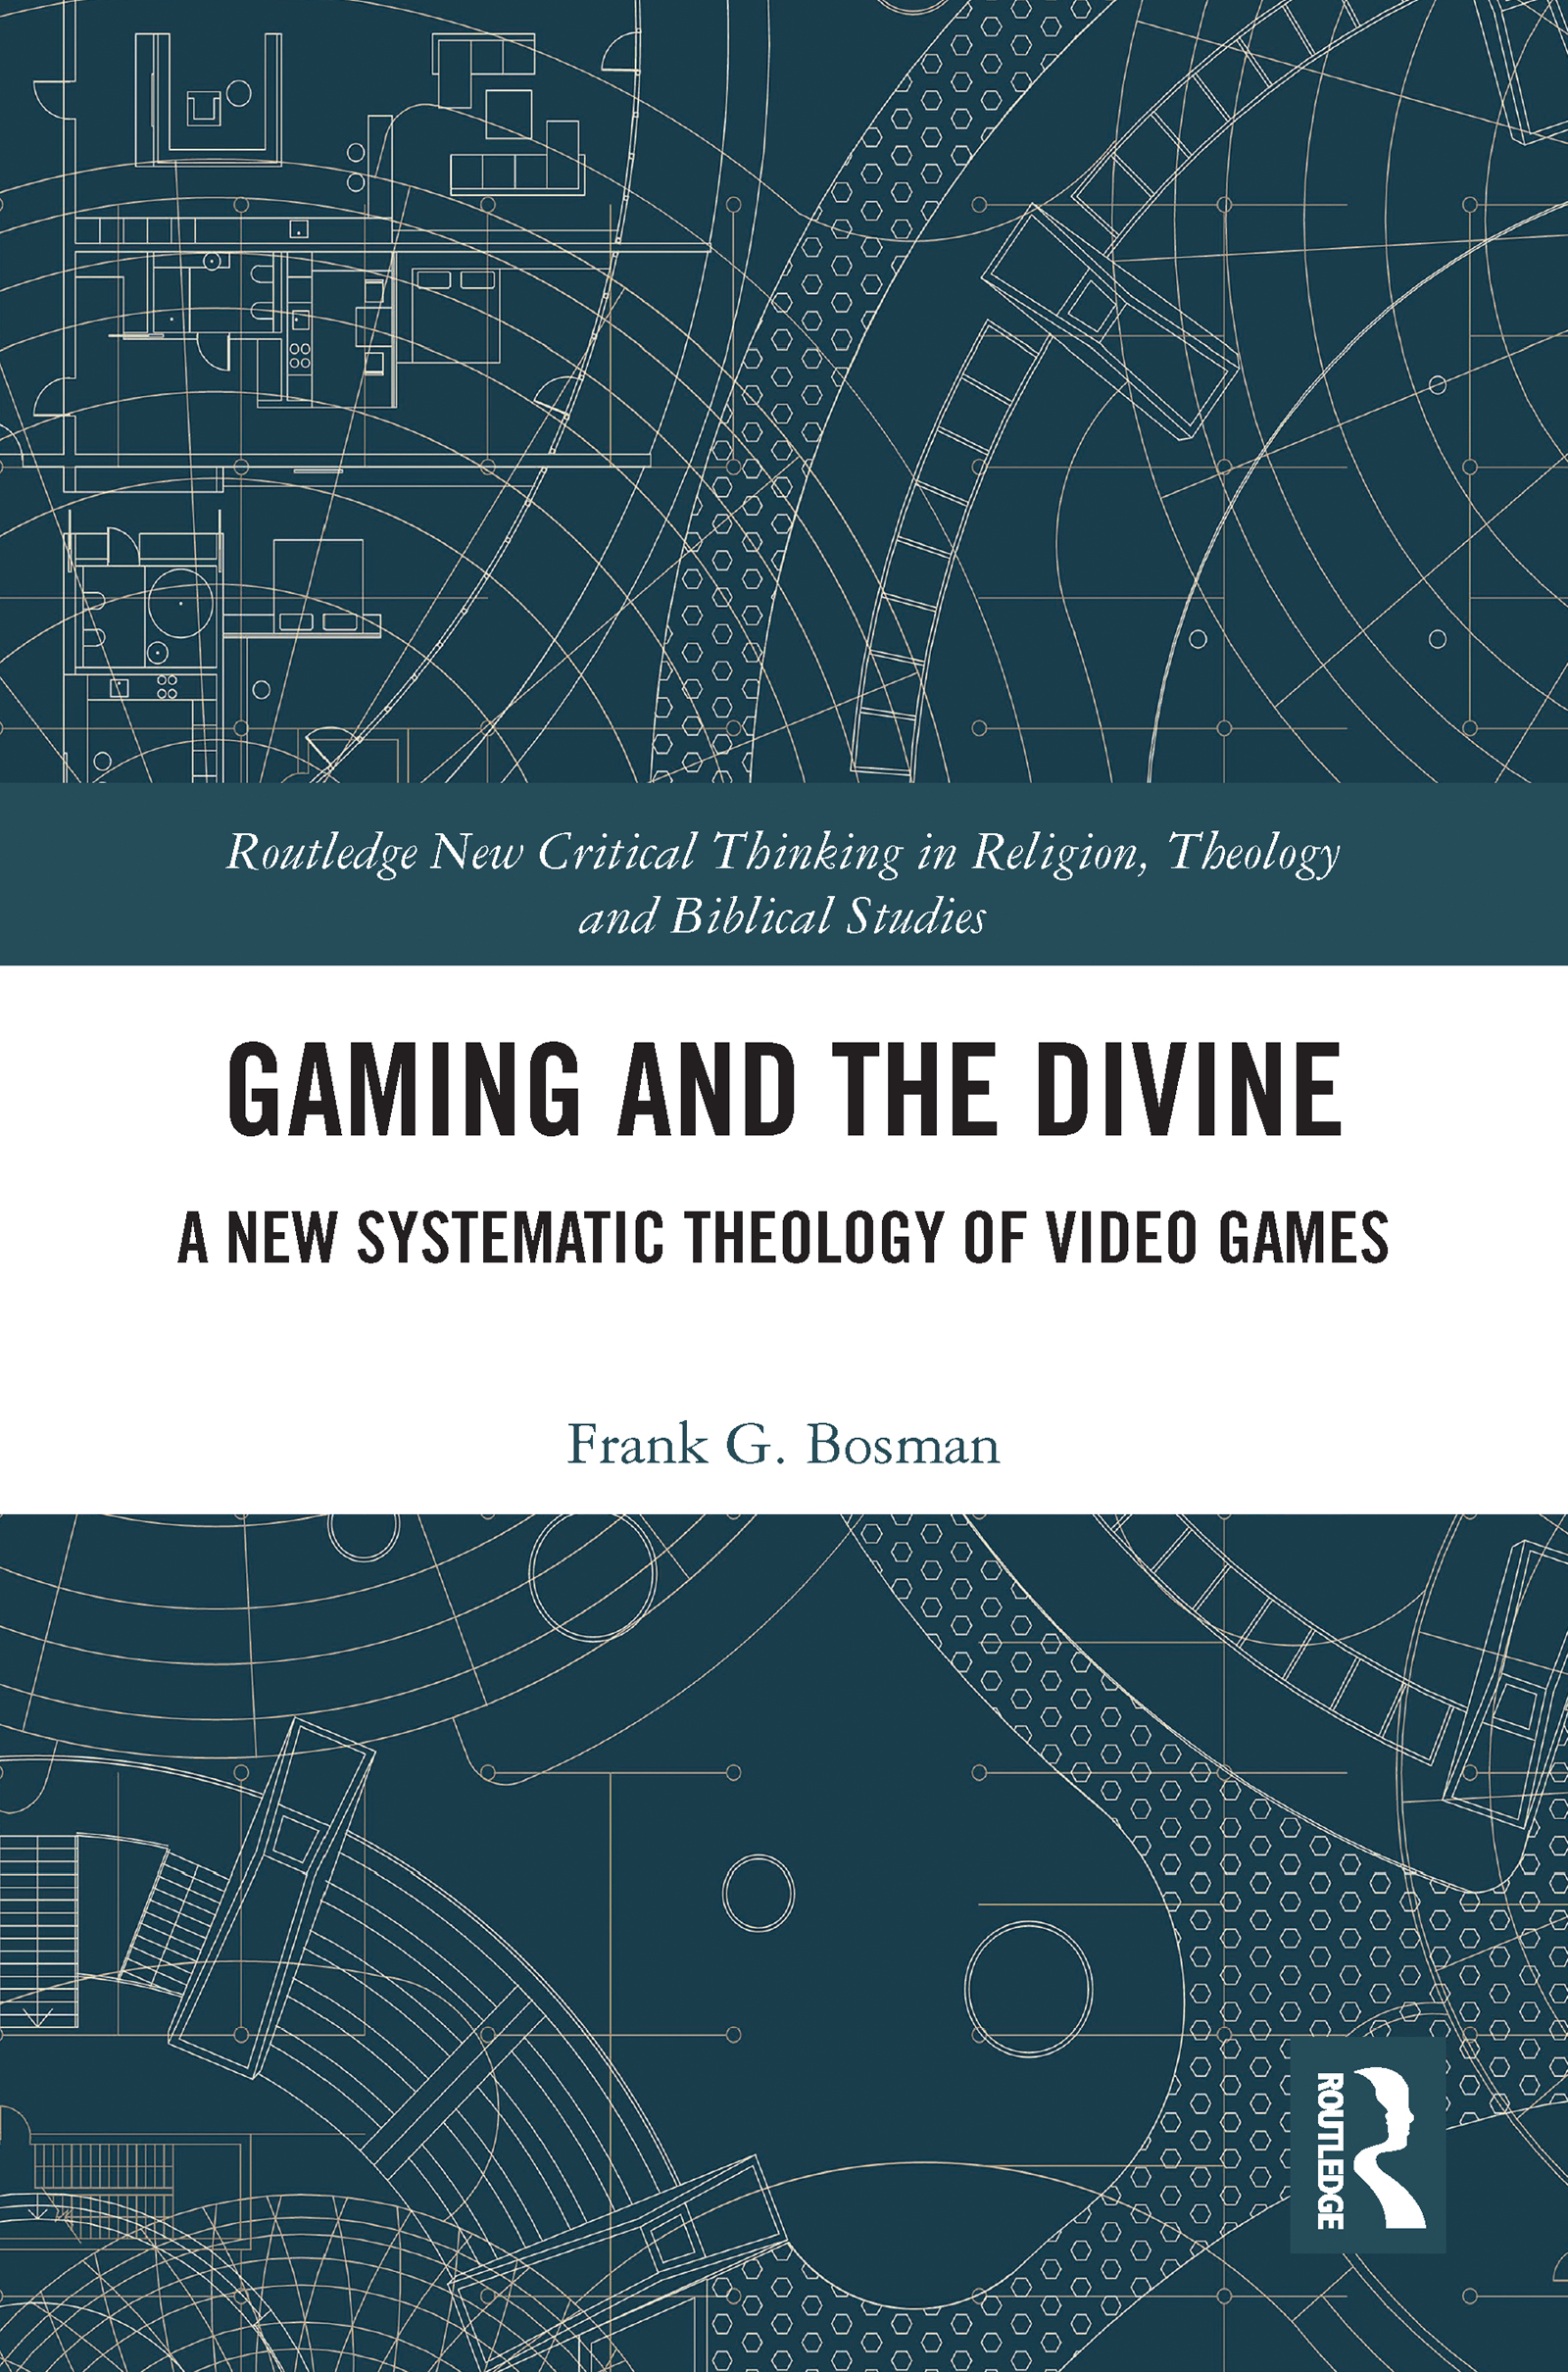 Gaming and the Divine